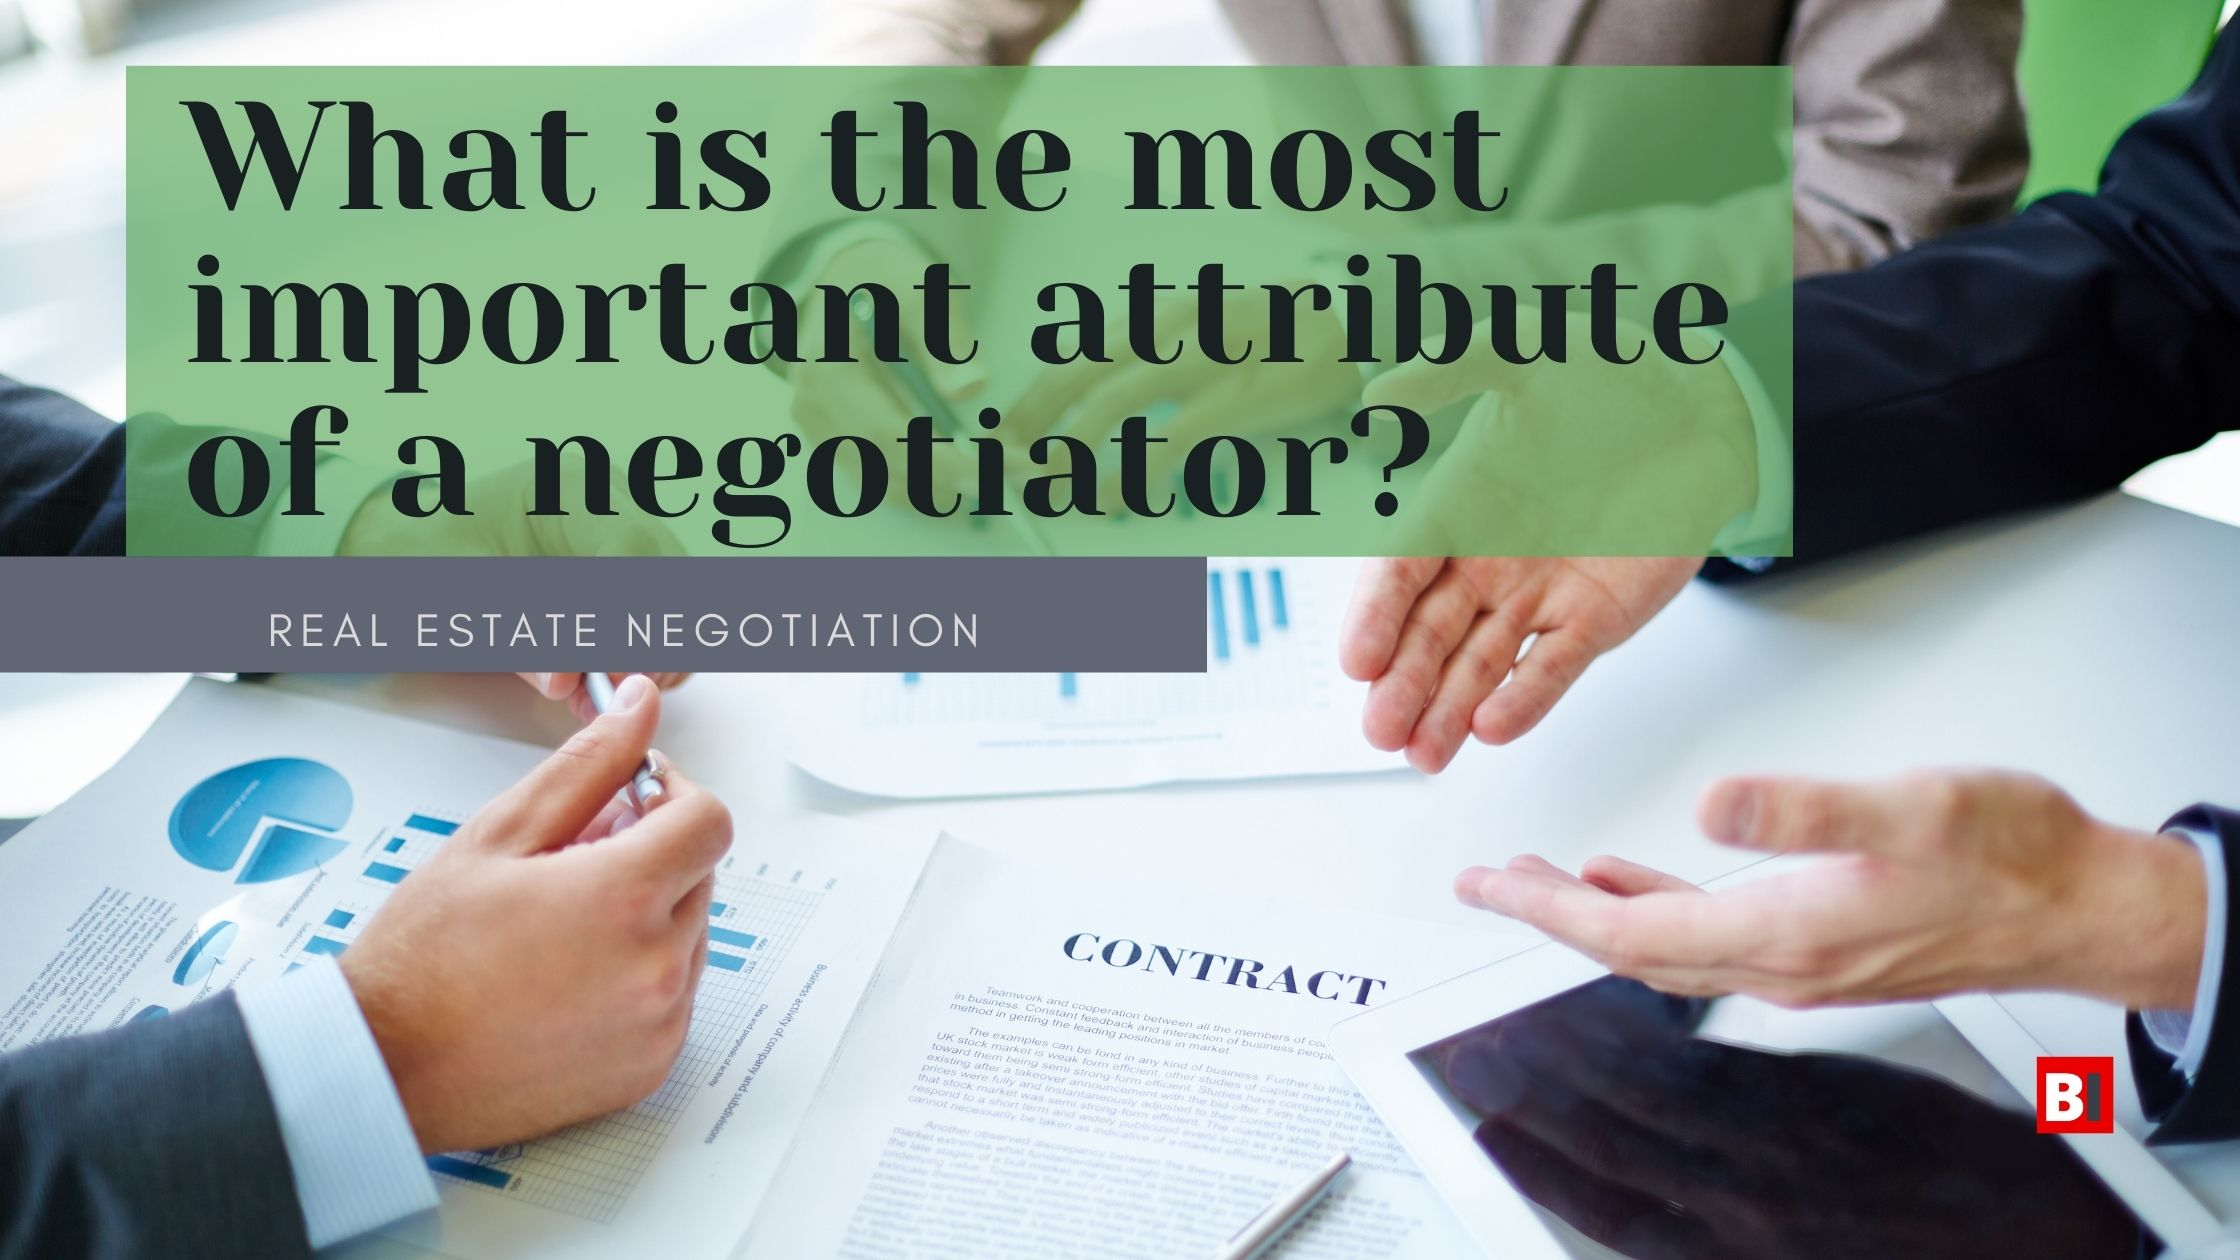 what is the most important attribute of a negotiator?